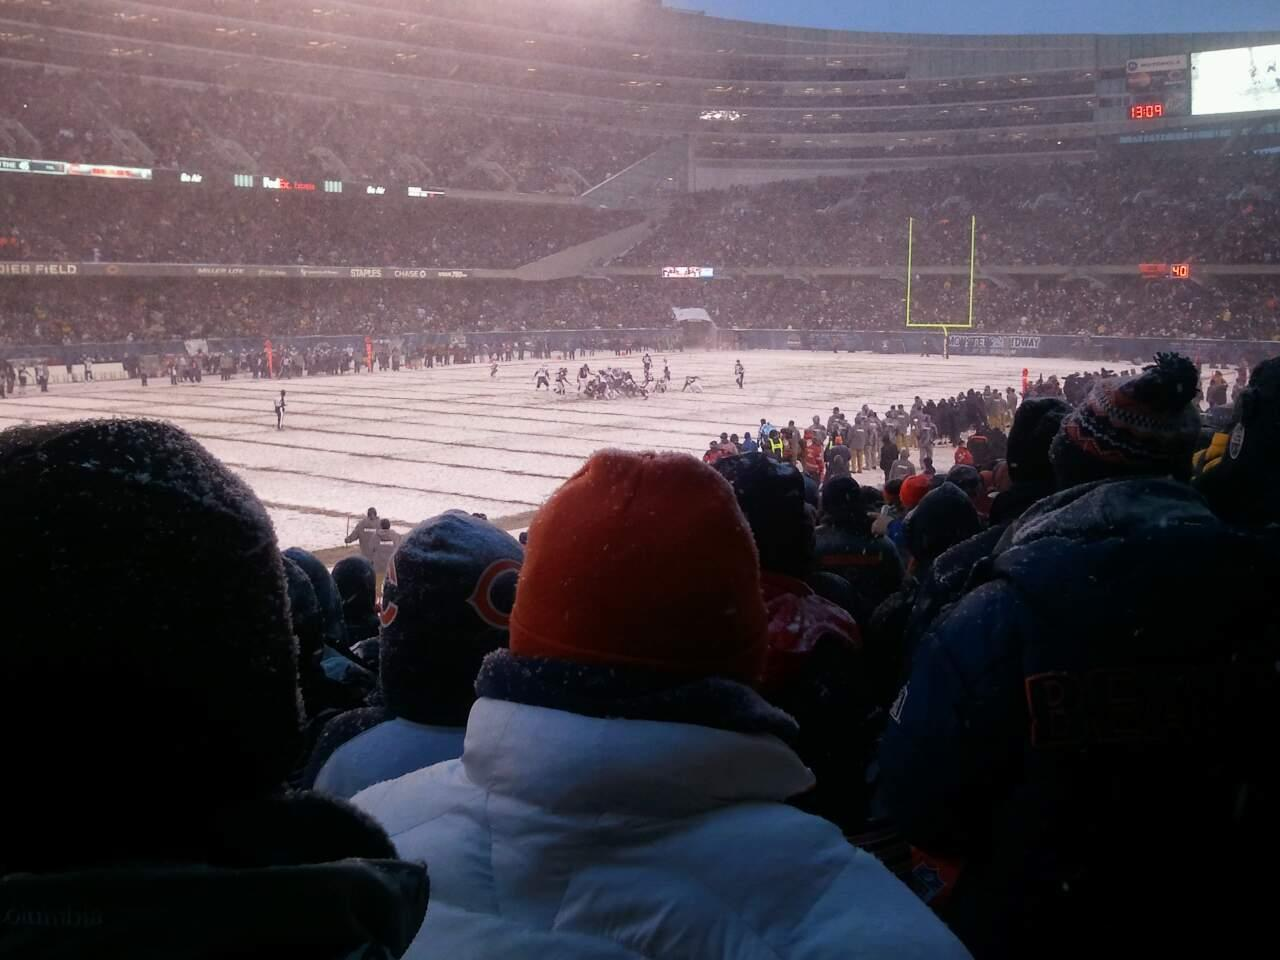 Soldier Field Section 144 Row 15 Seat 11